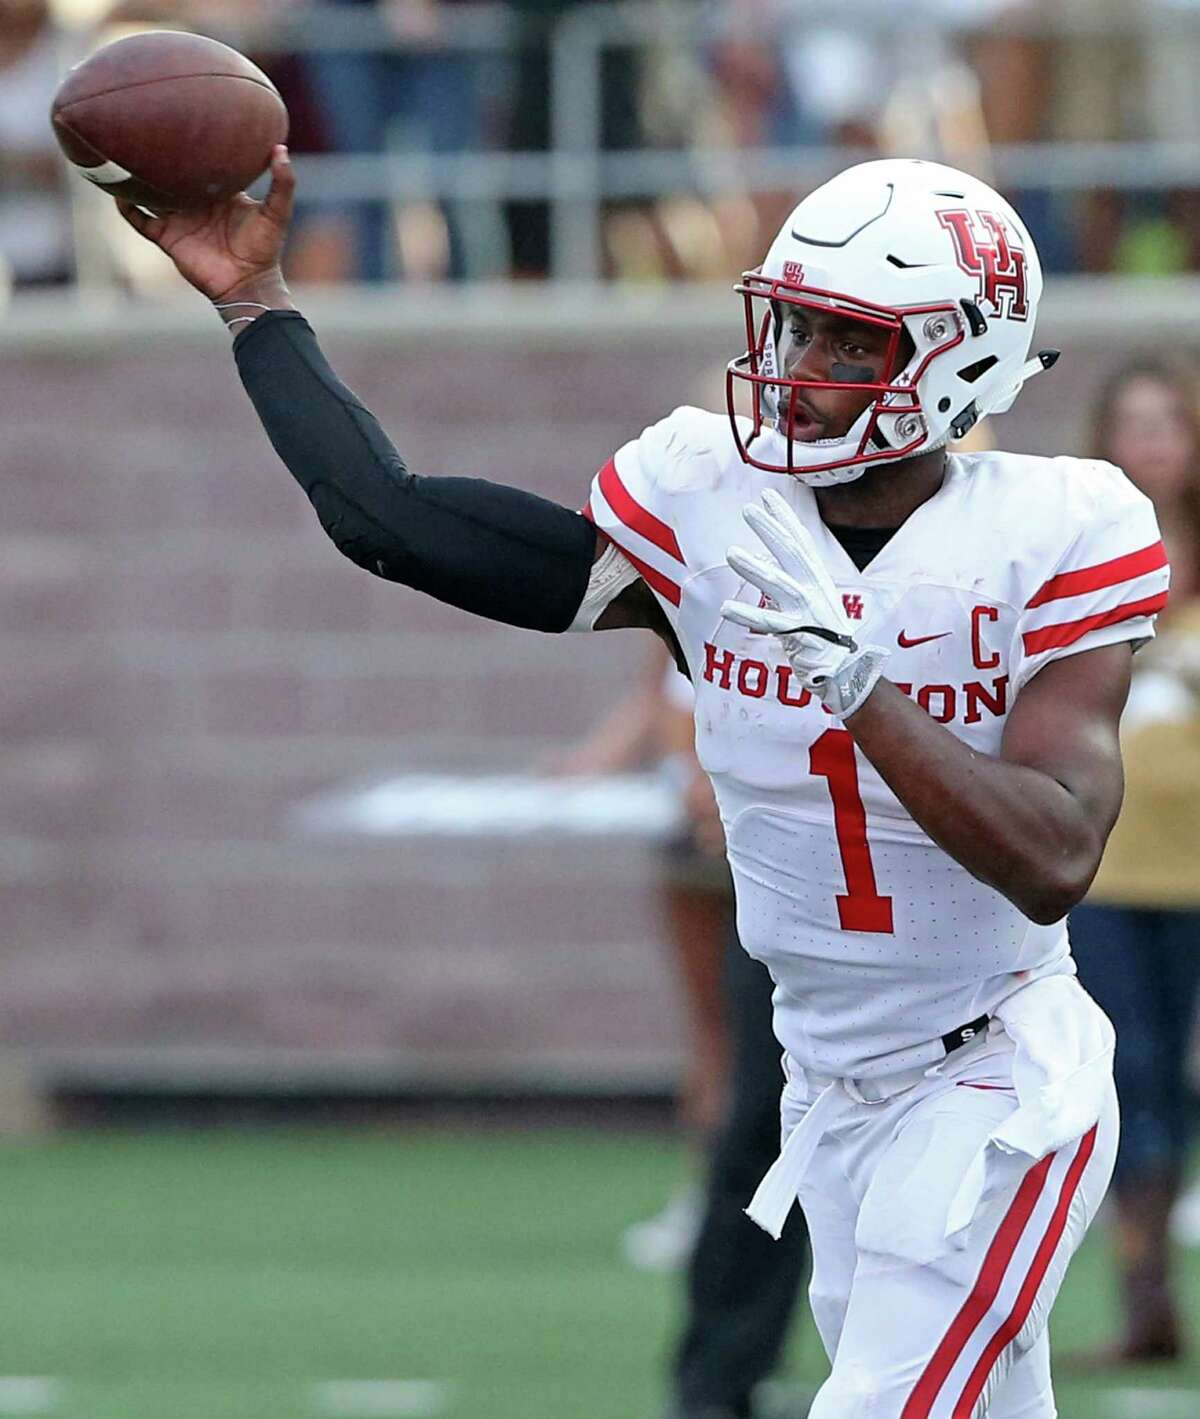 Houston Cougars quarterback Greg Ward Jr. passes during first half action against the Texas State Bobcats Saturday Sept. 24, 2016 at Bobcat Stadium in San Marcos, Tx.